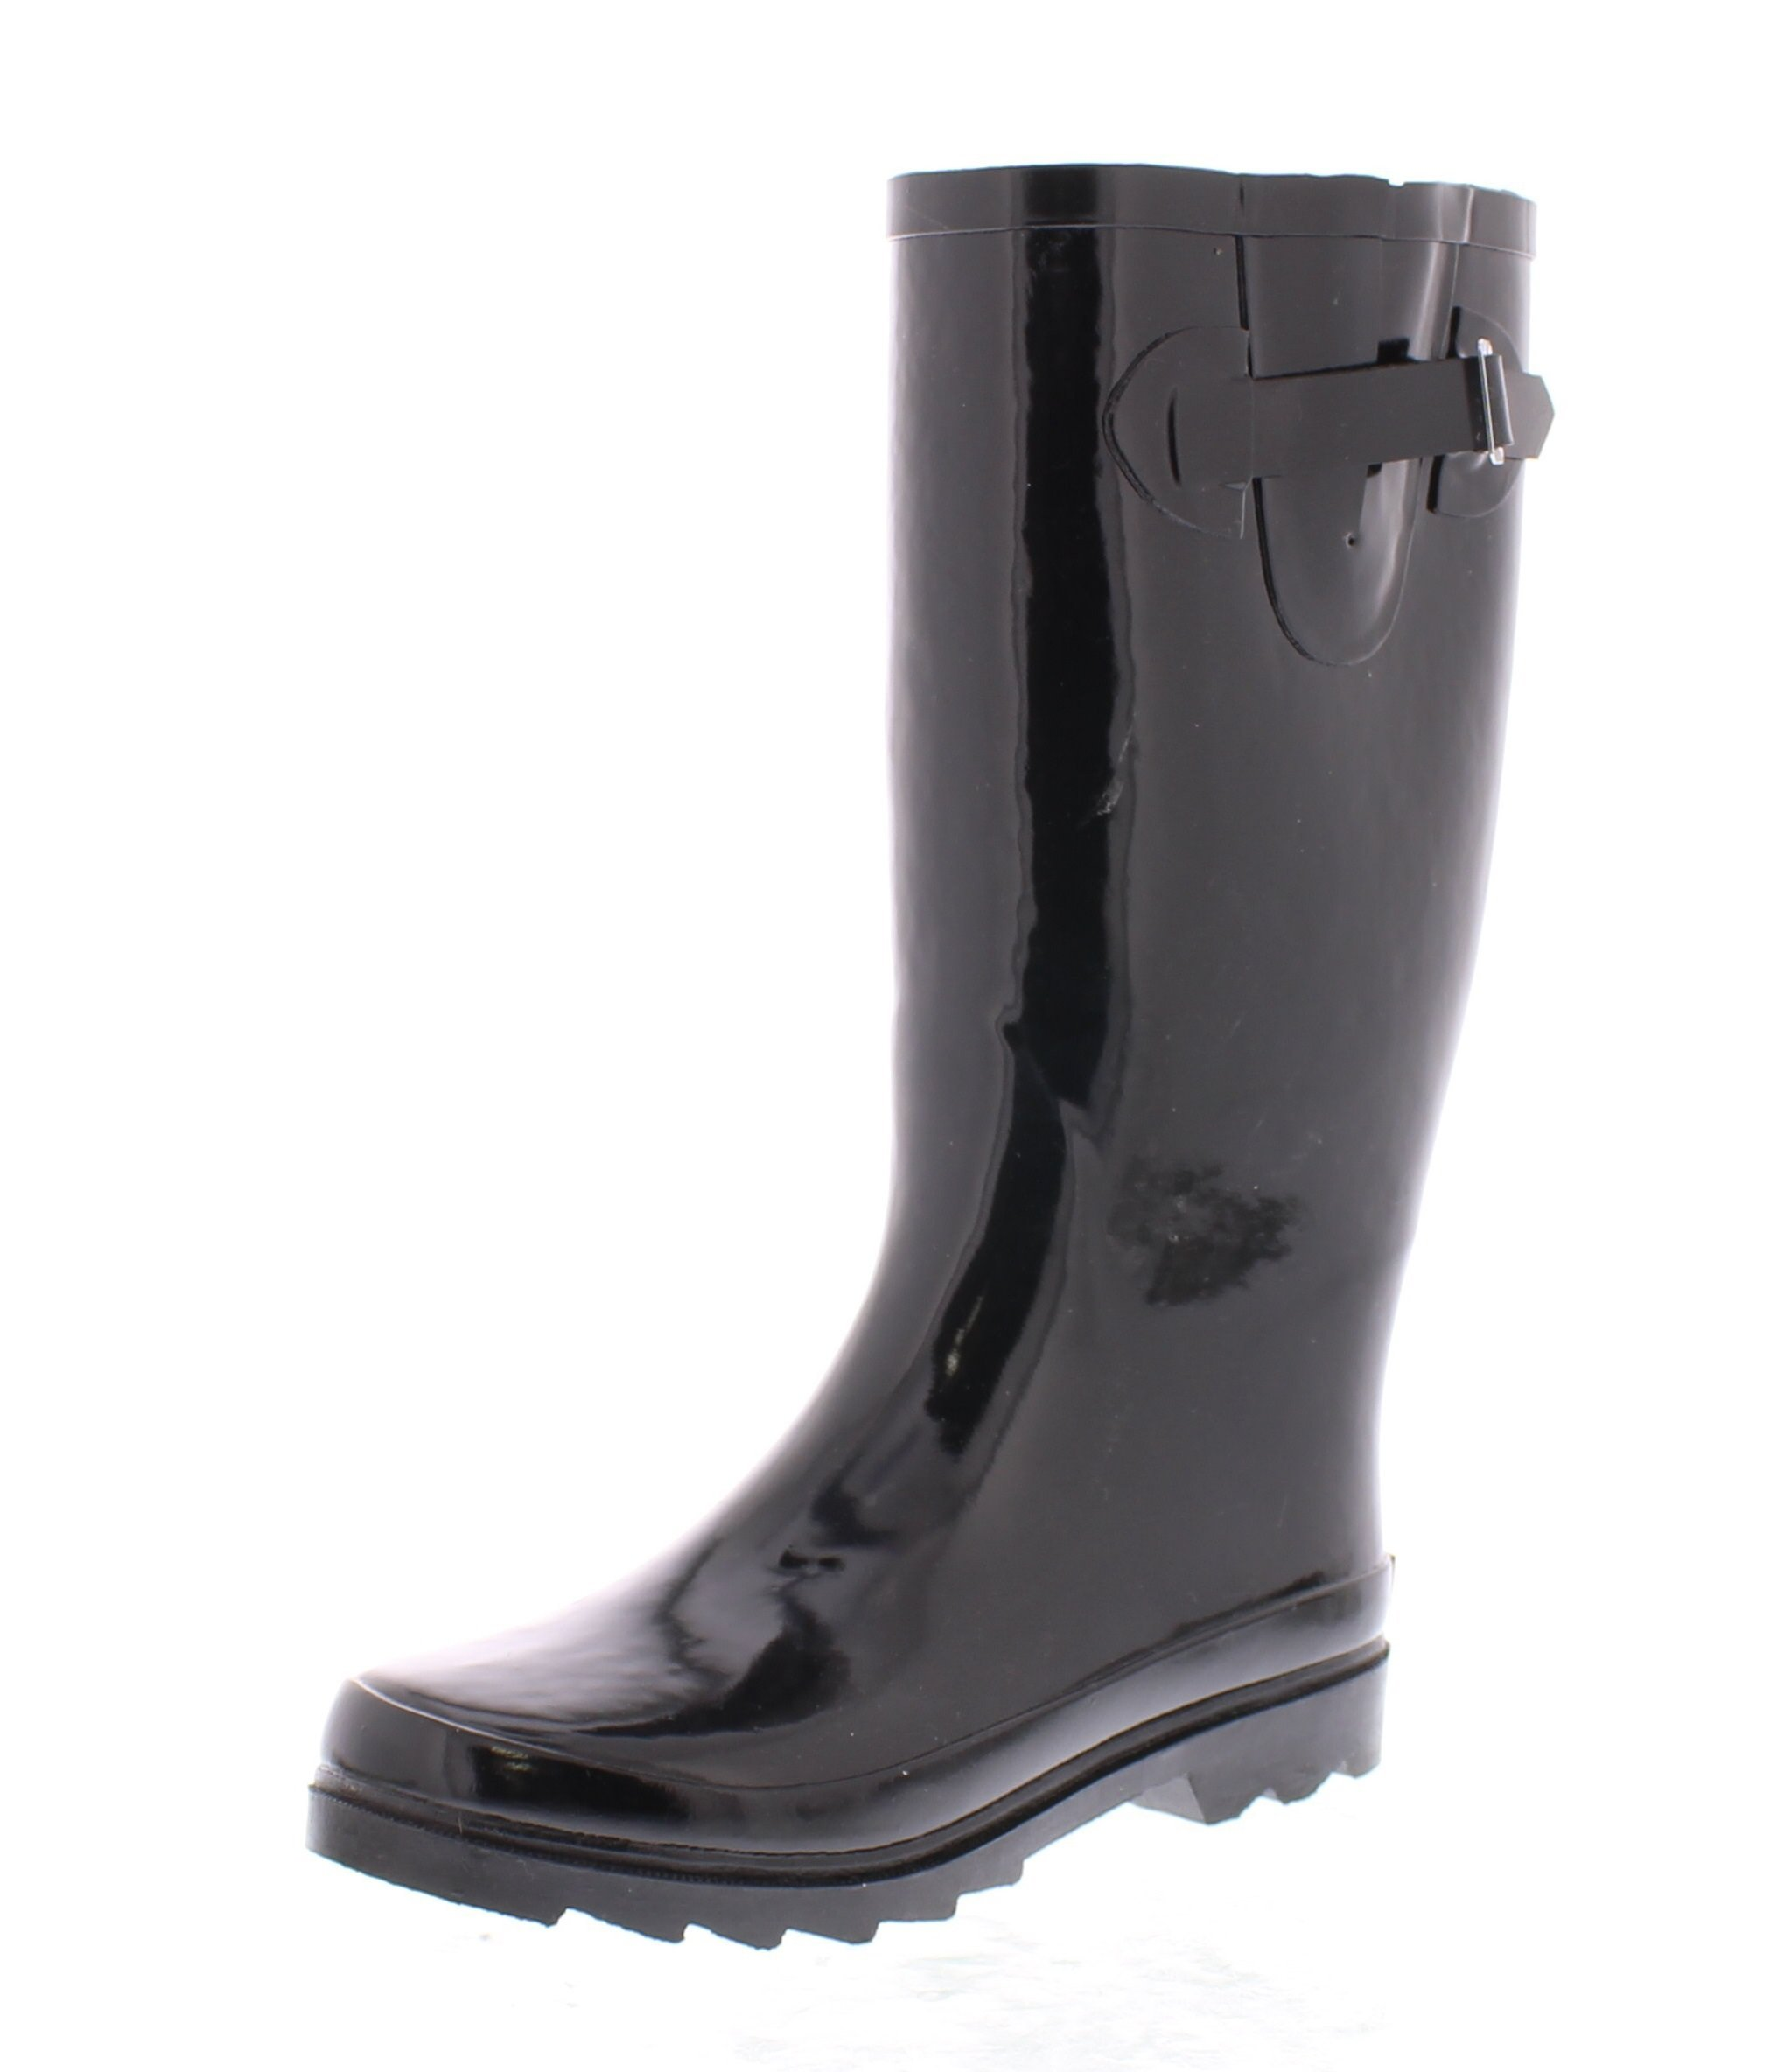 Marilyn Monroe Women's Basic Tall Buckle Rainboot Shoes, Waterproof Jelly Pull On Mid-Calf Welly Boots Black 10 US